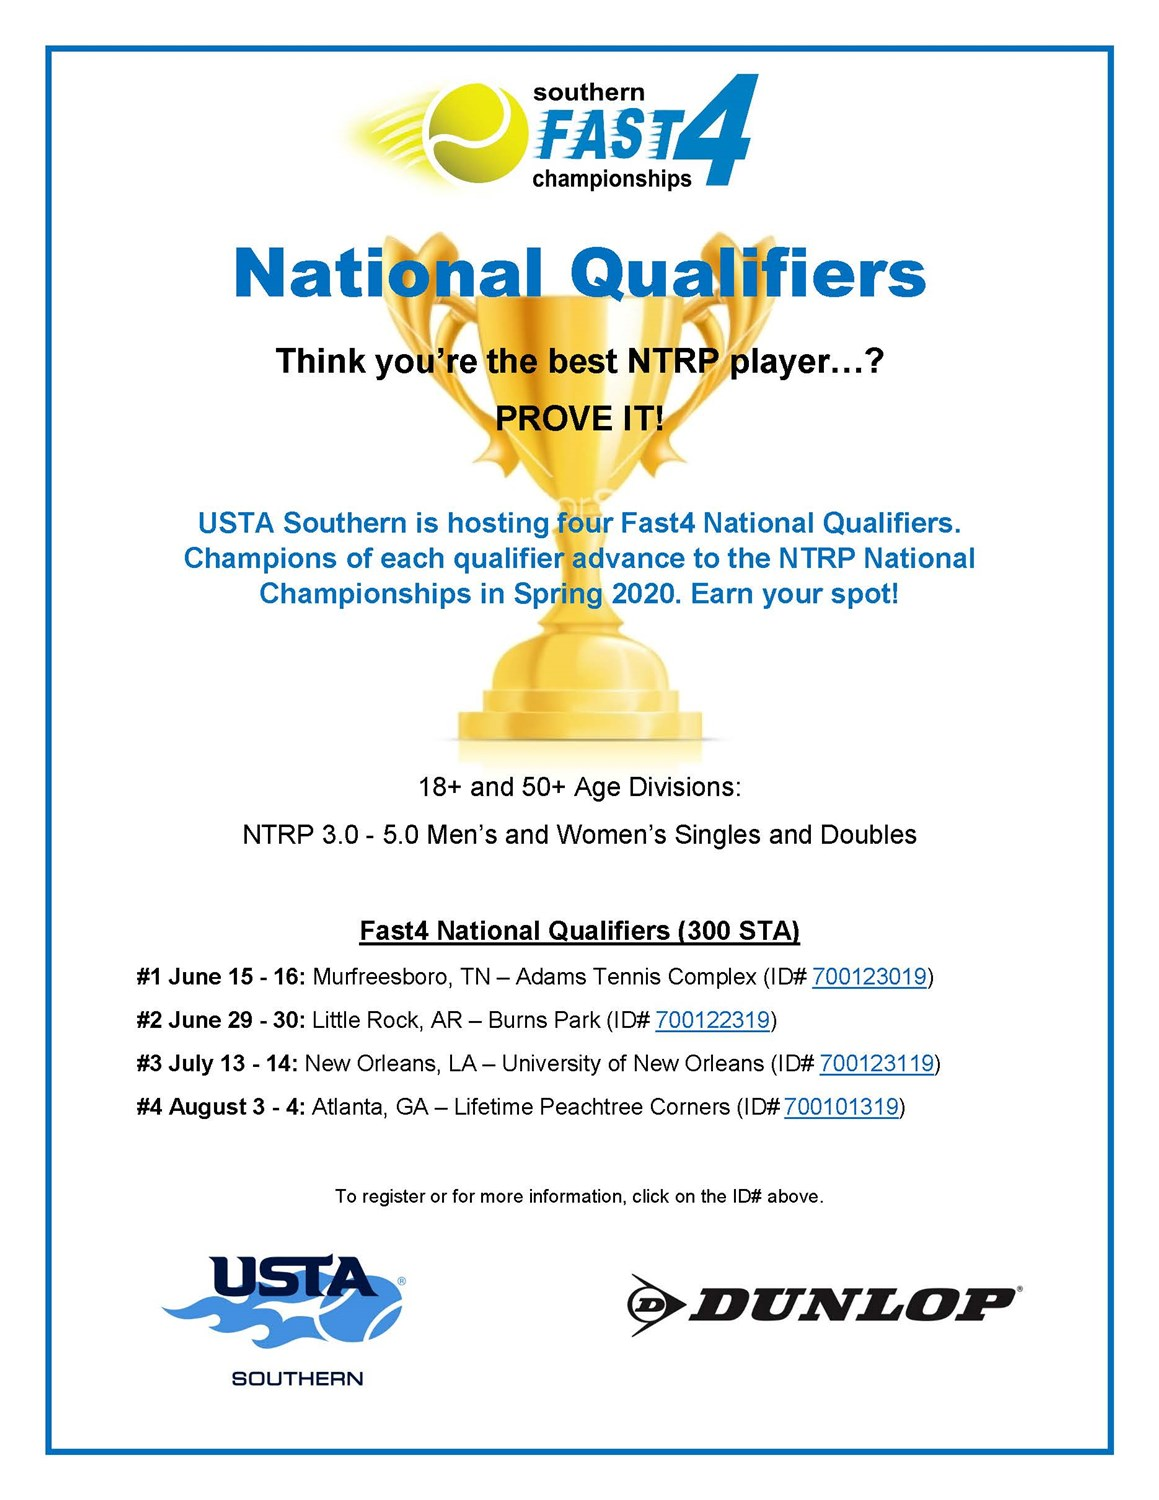 USTA_Southern_Fast4_Championship_Flyer_2019